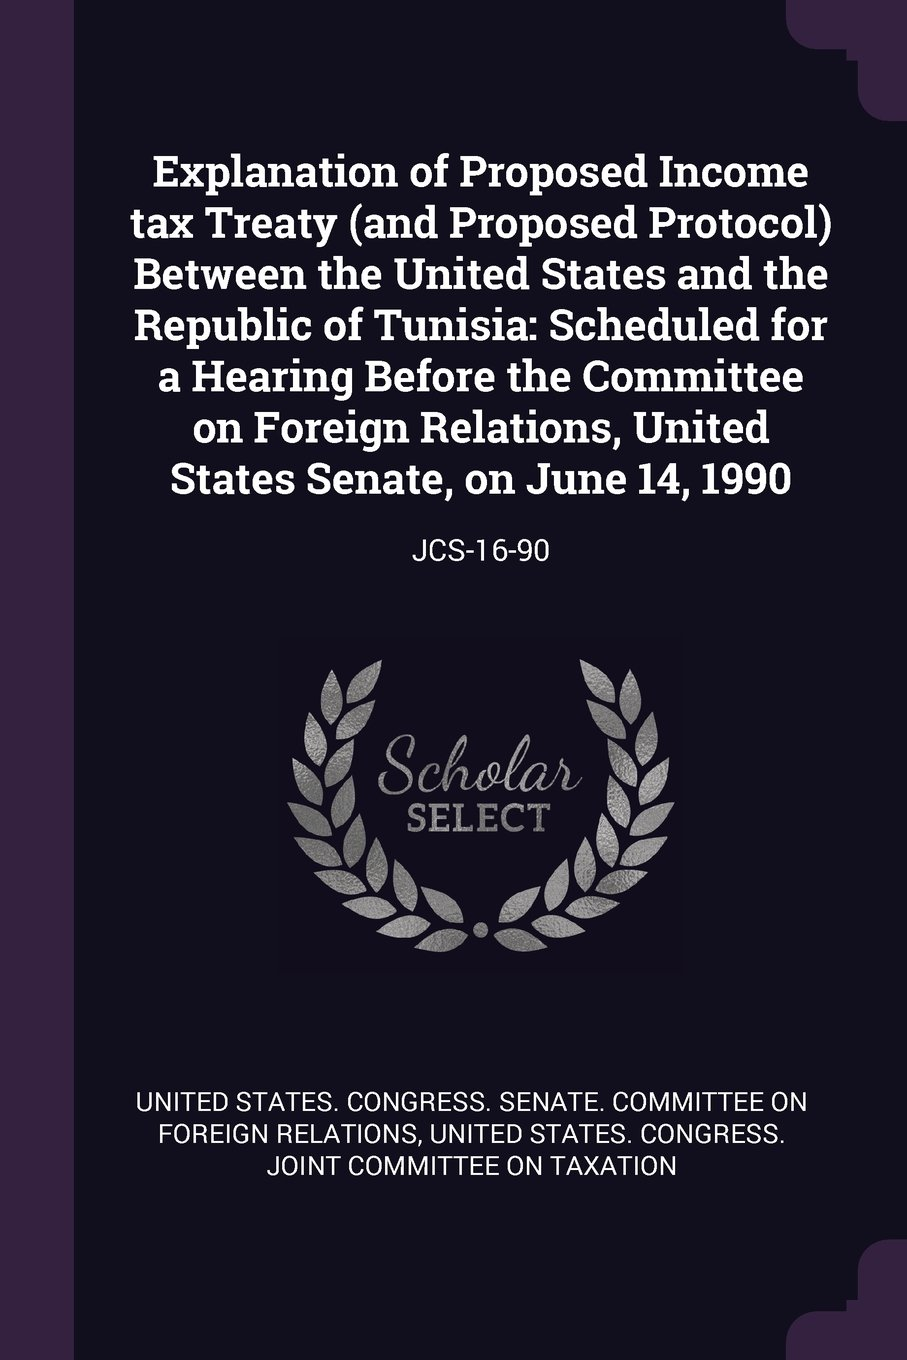 Explanation of Proposed Income Tax Treaty (and Proposed Protocol) Between the United States and the Republic of Tunisia: Scheduled for a Hearing States Senate, on June 14, 1990: Jcs-16-90 Text fb2 ebook